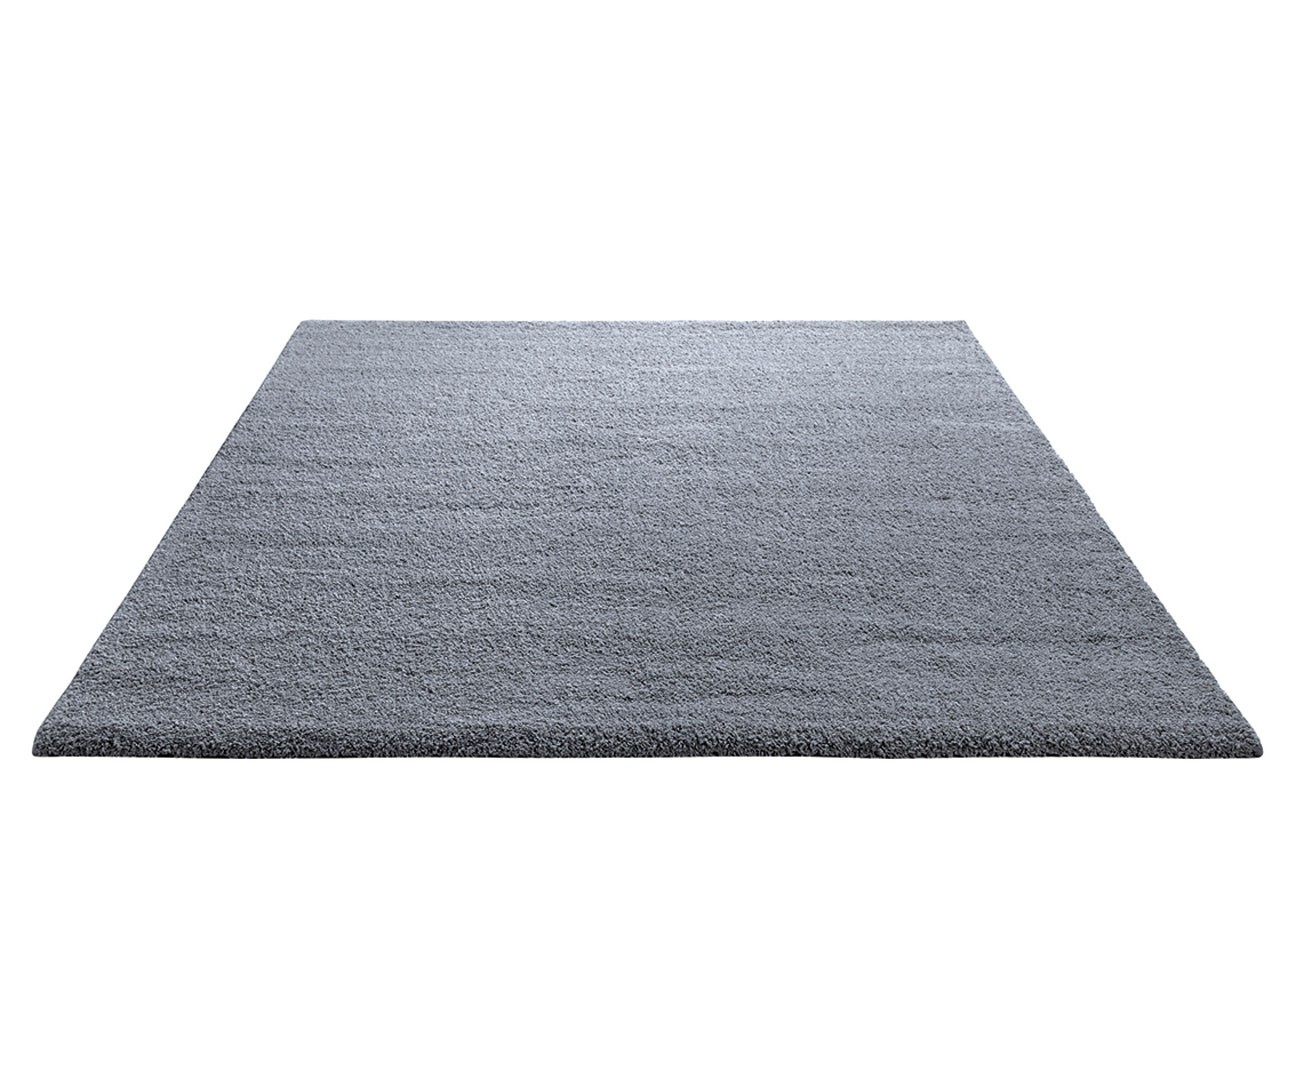 tapis shaggy en polyester et laine gris wool glamour par esprit home. Black Bedroom Furniture Sets. Home Design Ideas